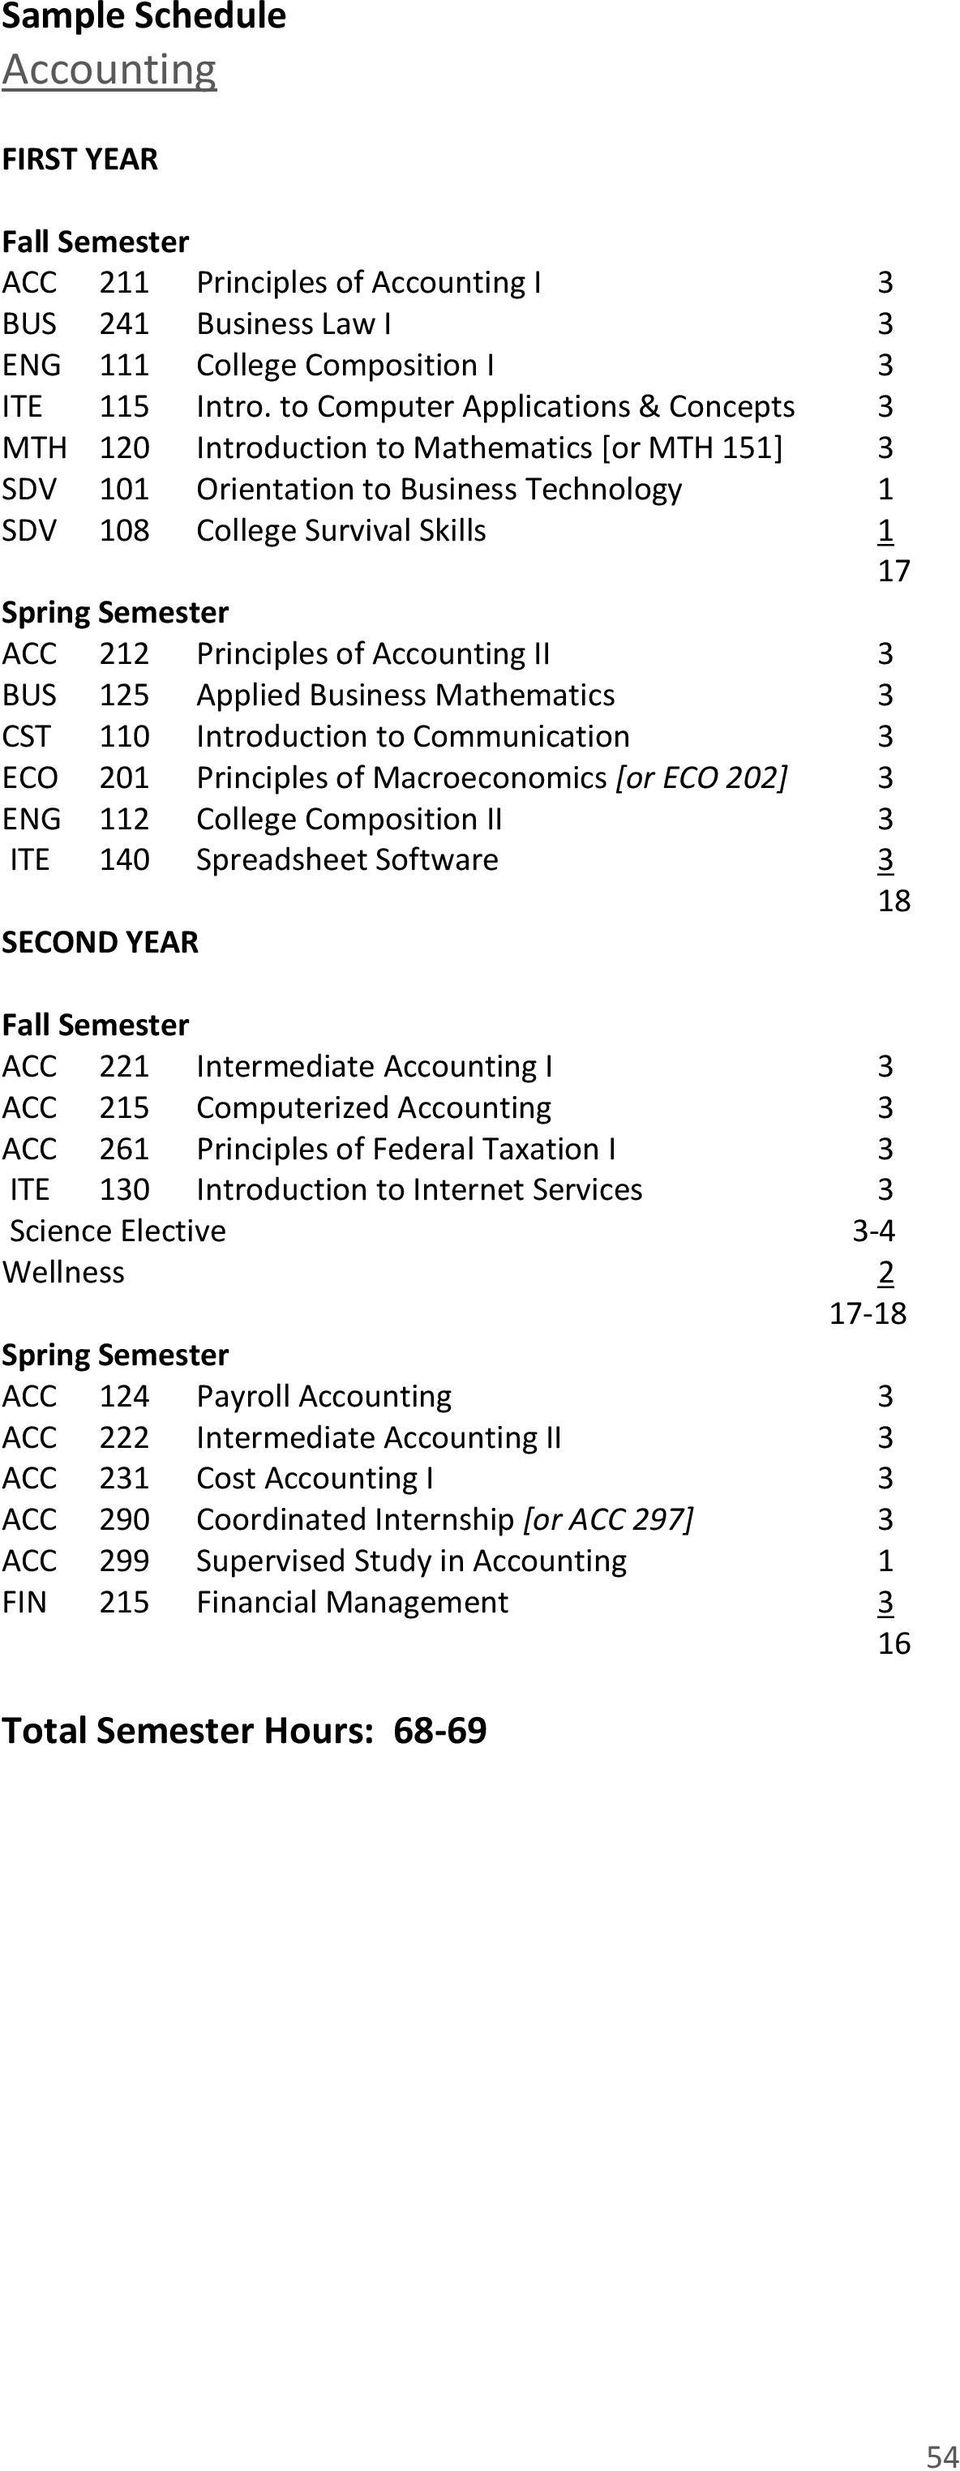 Mathematics 3 CST 110 Introduction to Communication 3 ECO 201 Principles of Macroeconomics [or ECO 202] 3 ENG 112 College Composition II 3 ITE 140 Spreadsheet Software 3 18 SECOND YEAR ACC 221